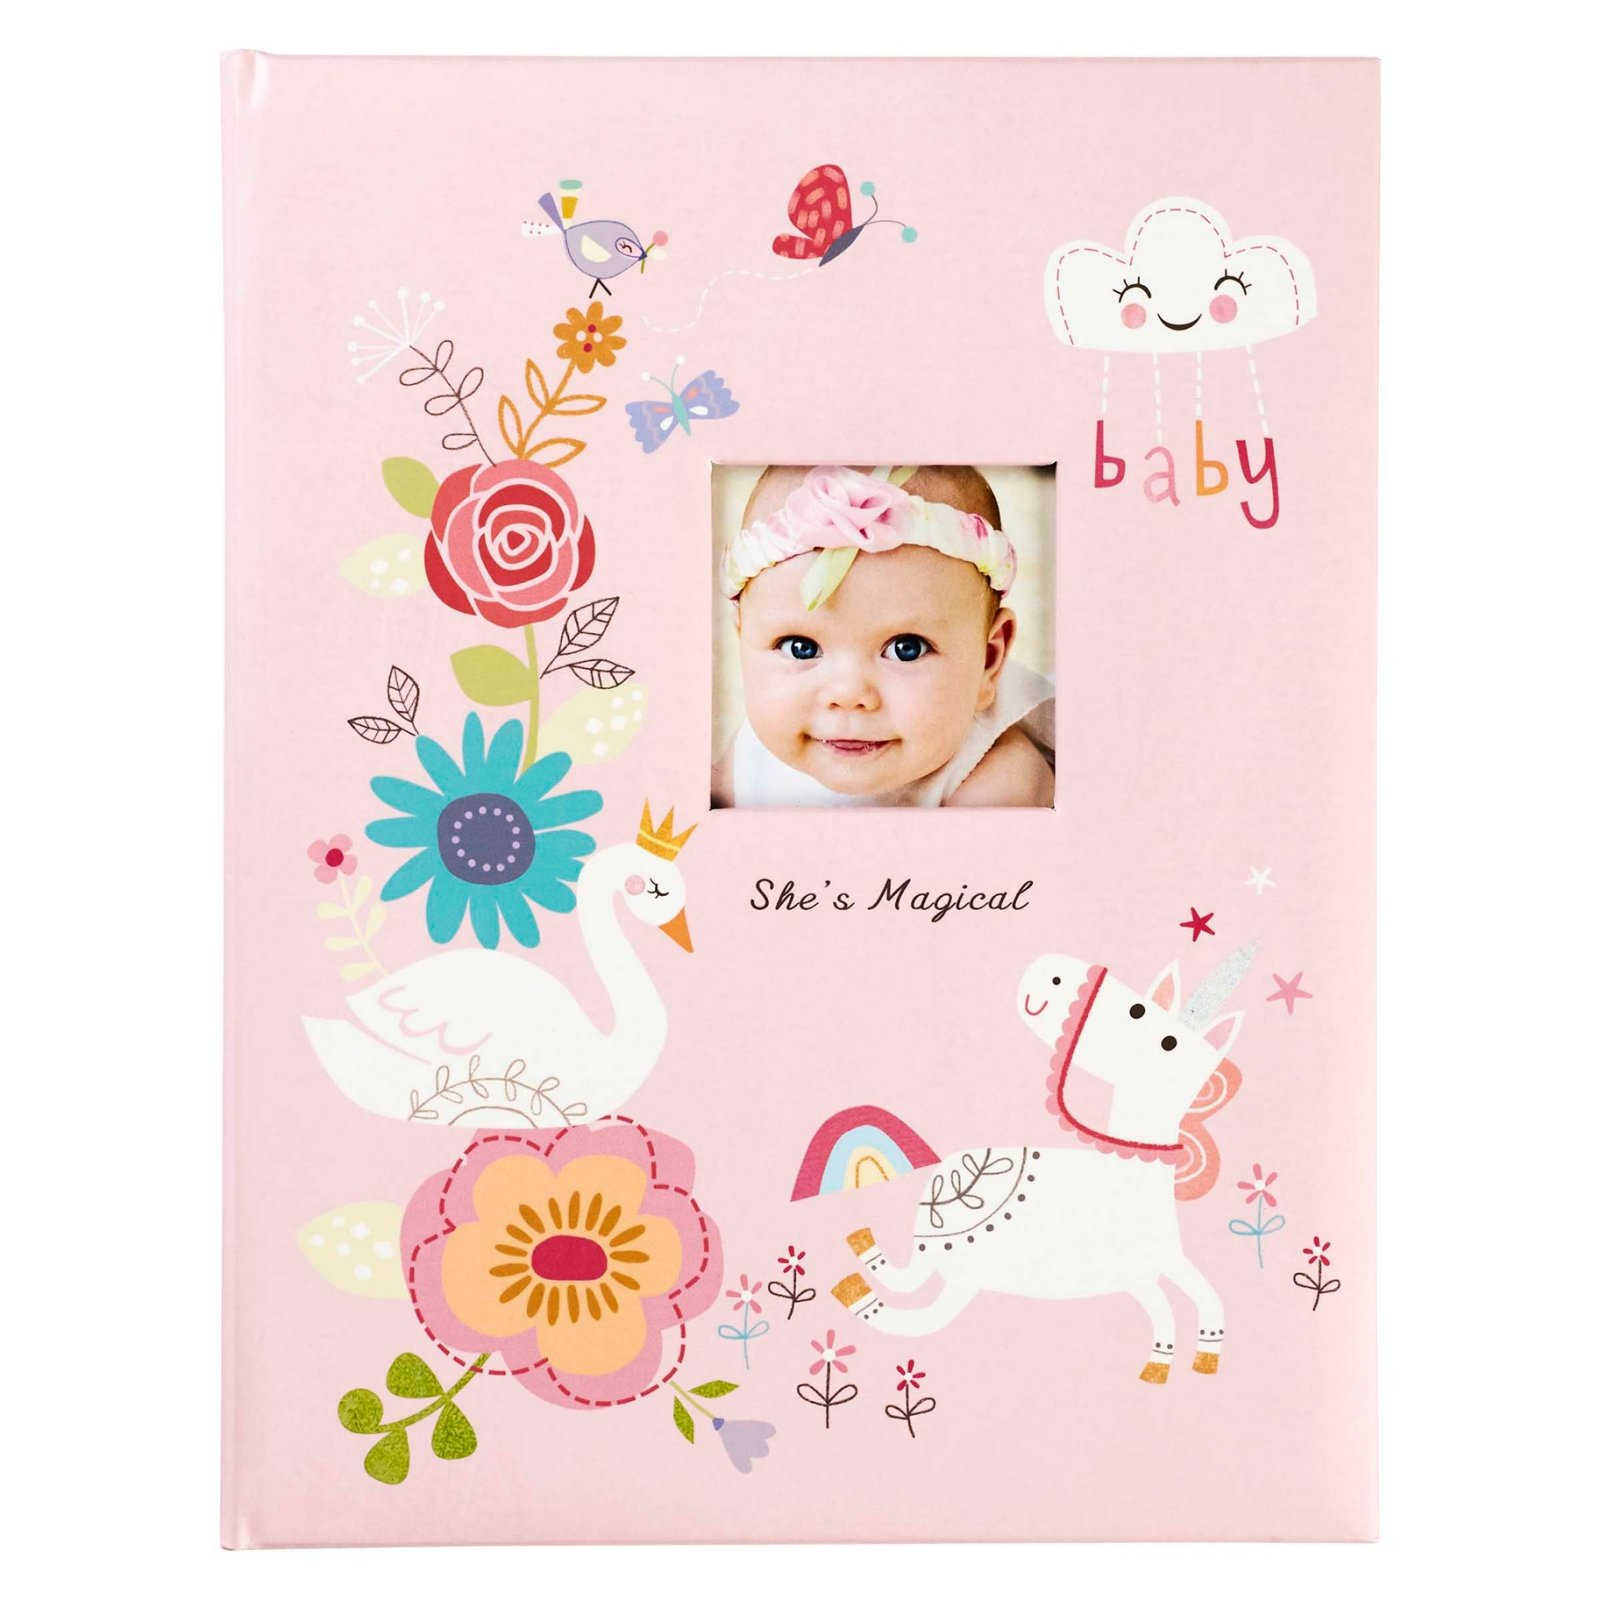 Shes Magical Memory Book